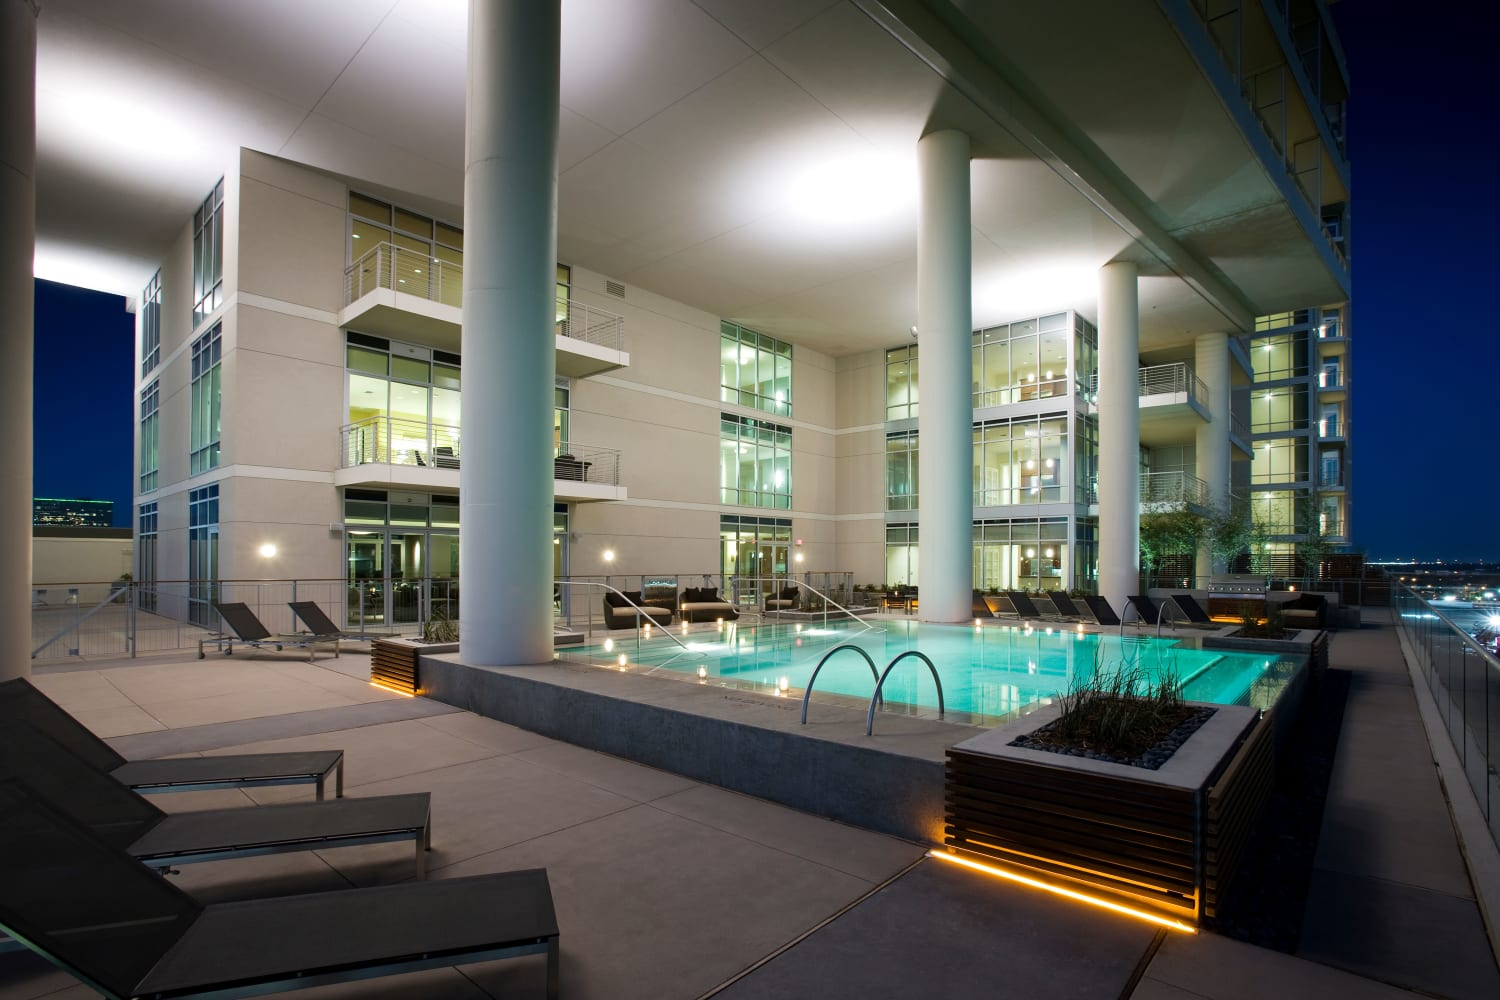 Resort-style swimming pool with lounge chairs at The Heights at Park Lane in Dallas, Texas